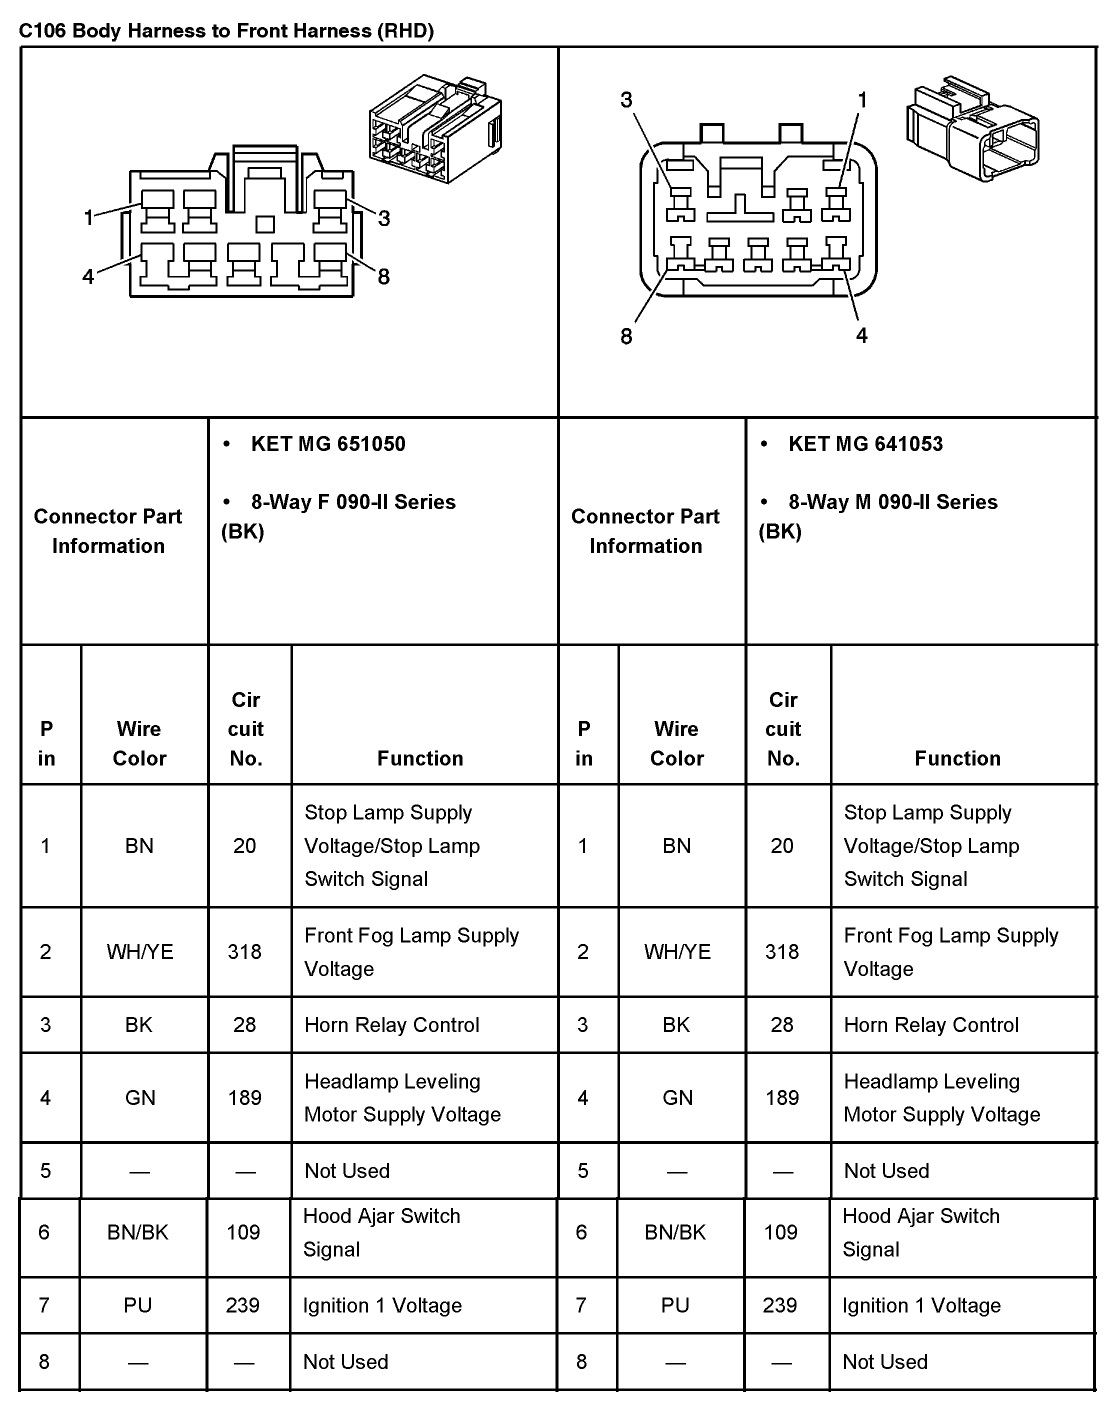 7331d1383704576 2005 aveo master connector list diagrams conn3 jpg 2008 chevy aveo fuse box diagram chevy aveo door lock diagram 2007 chevy aveo fuse box location at soozxer.org